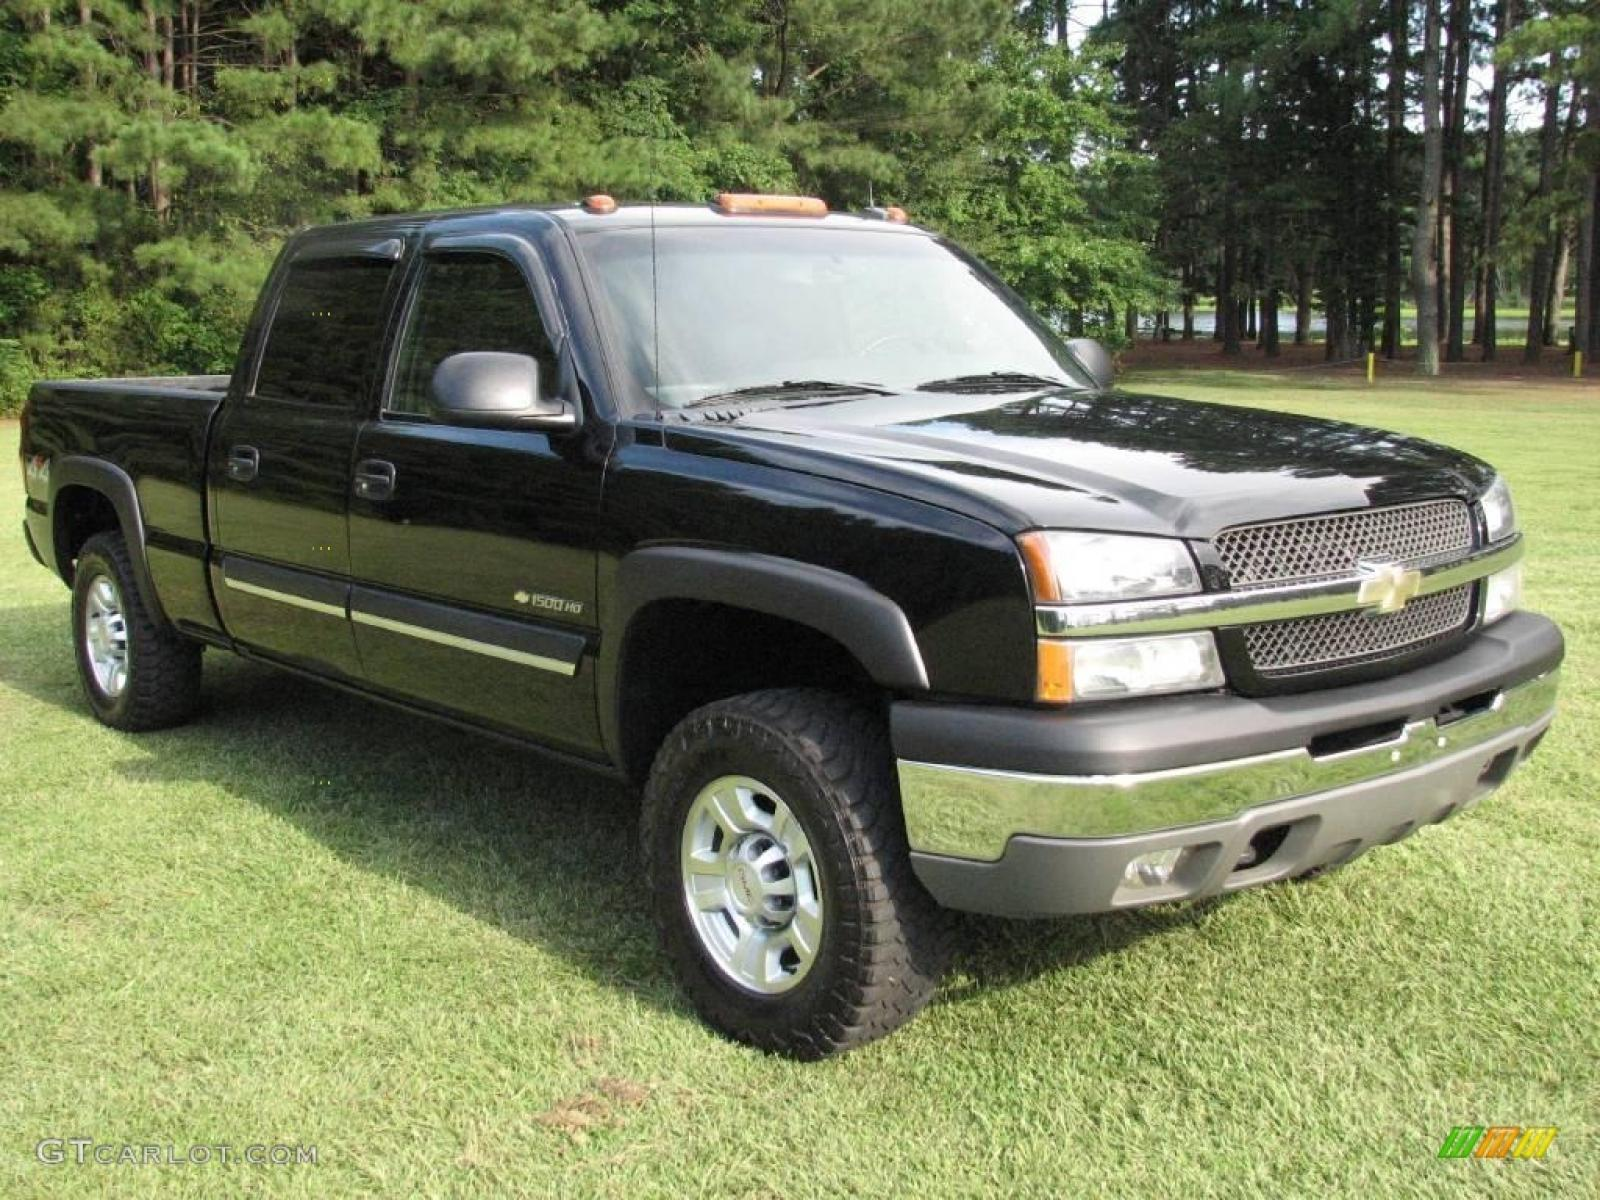 Chevrolet Silverado 1500hd 2 800 1024 1280 1600 Origin